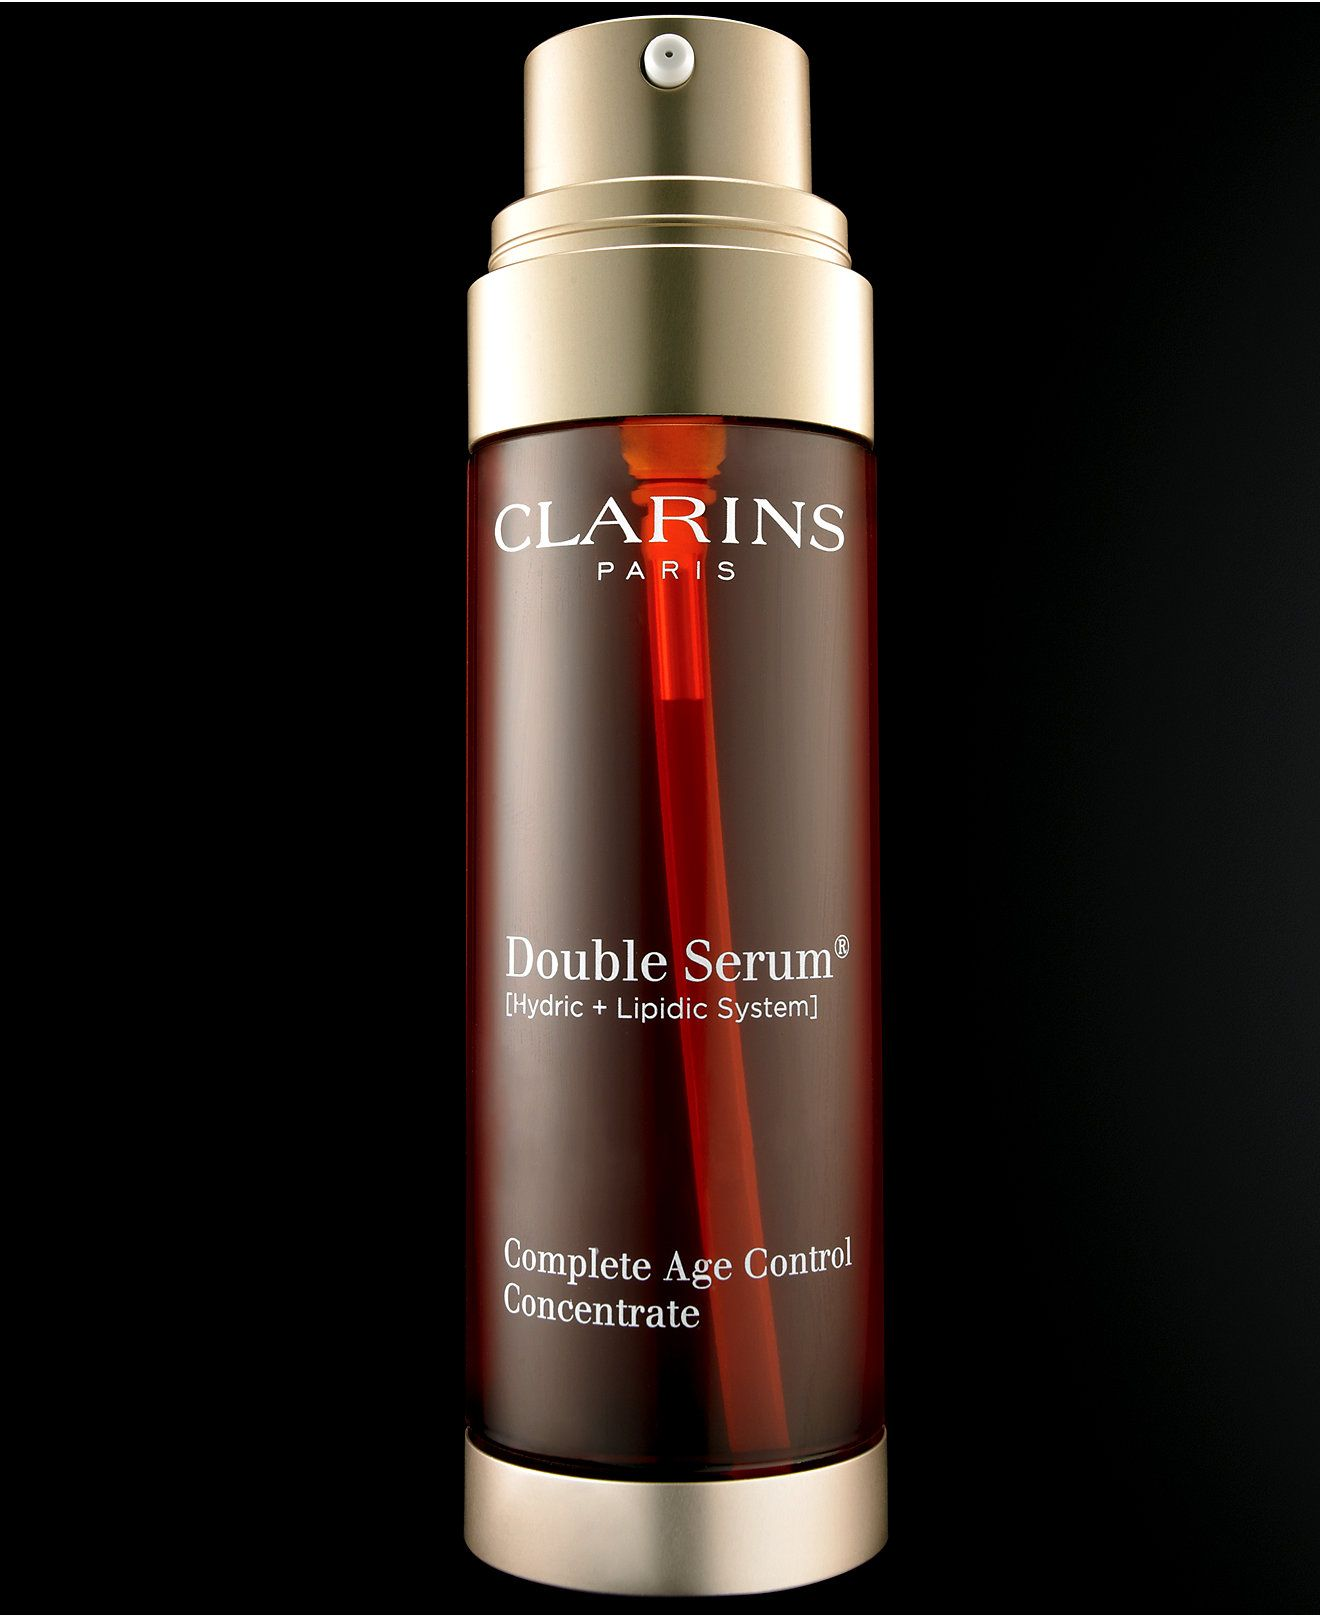 Clarins Double Serum plete Age Control Concentrate 1 oz